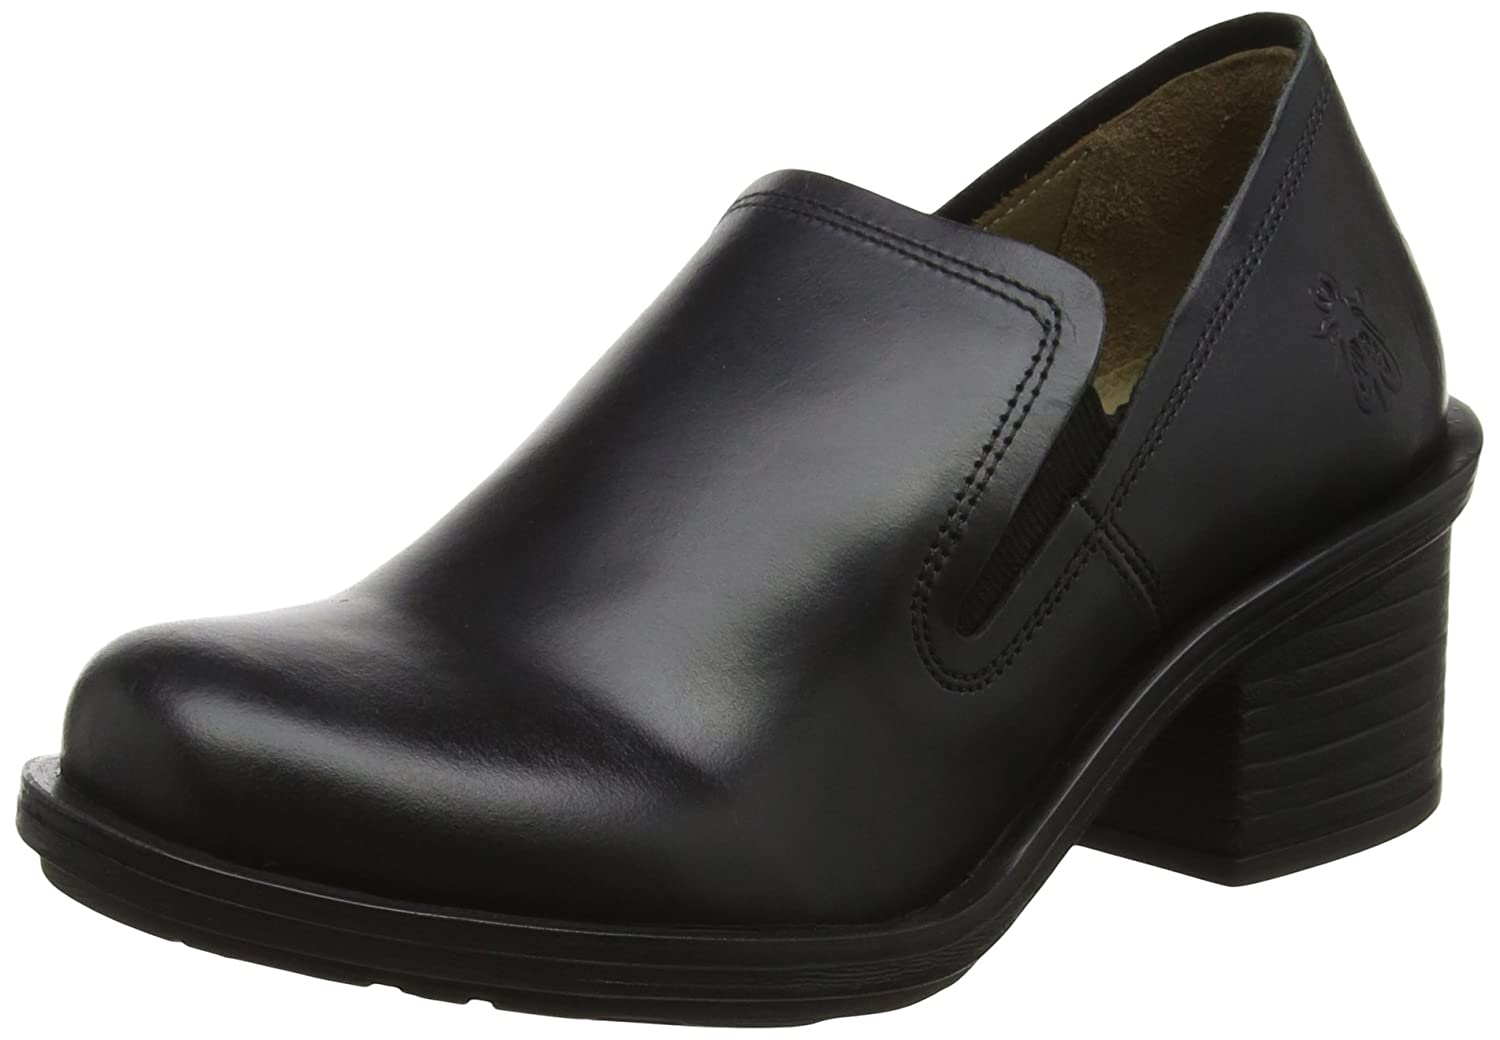 FLY London Pumps, Damen Coby087fly Pumps, London Schwarz Schwarz (schwarz) da3050